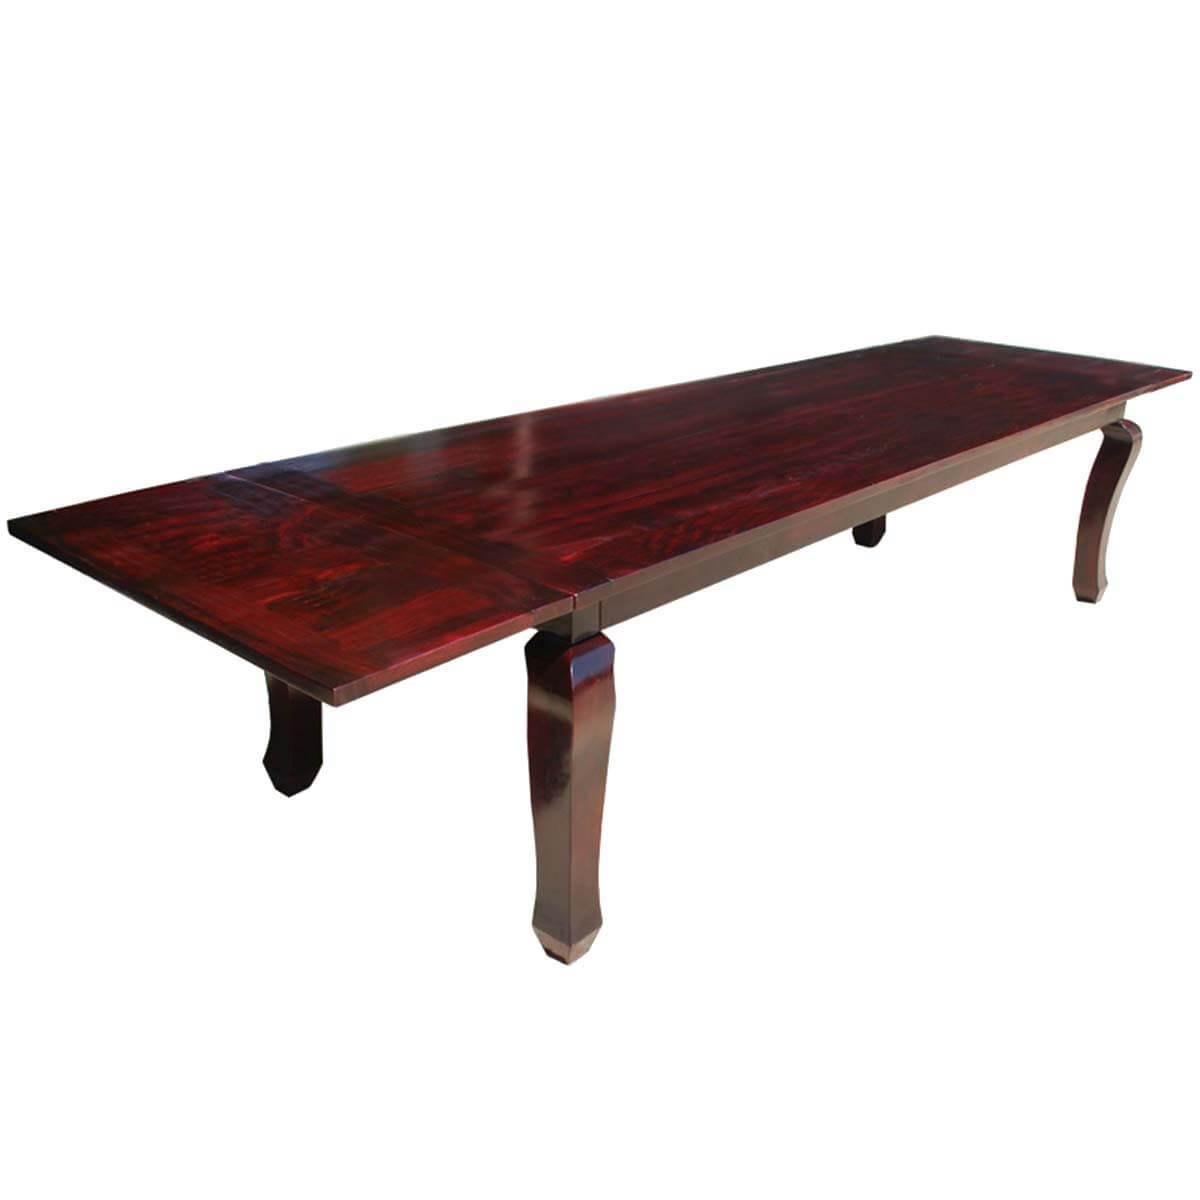 dining room table extender | Solid Wood Cabriole Leg Dining Room Table with Extension ...